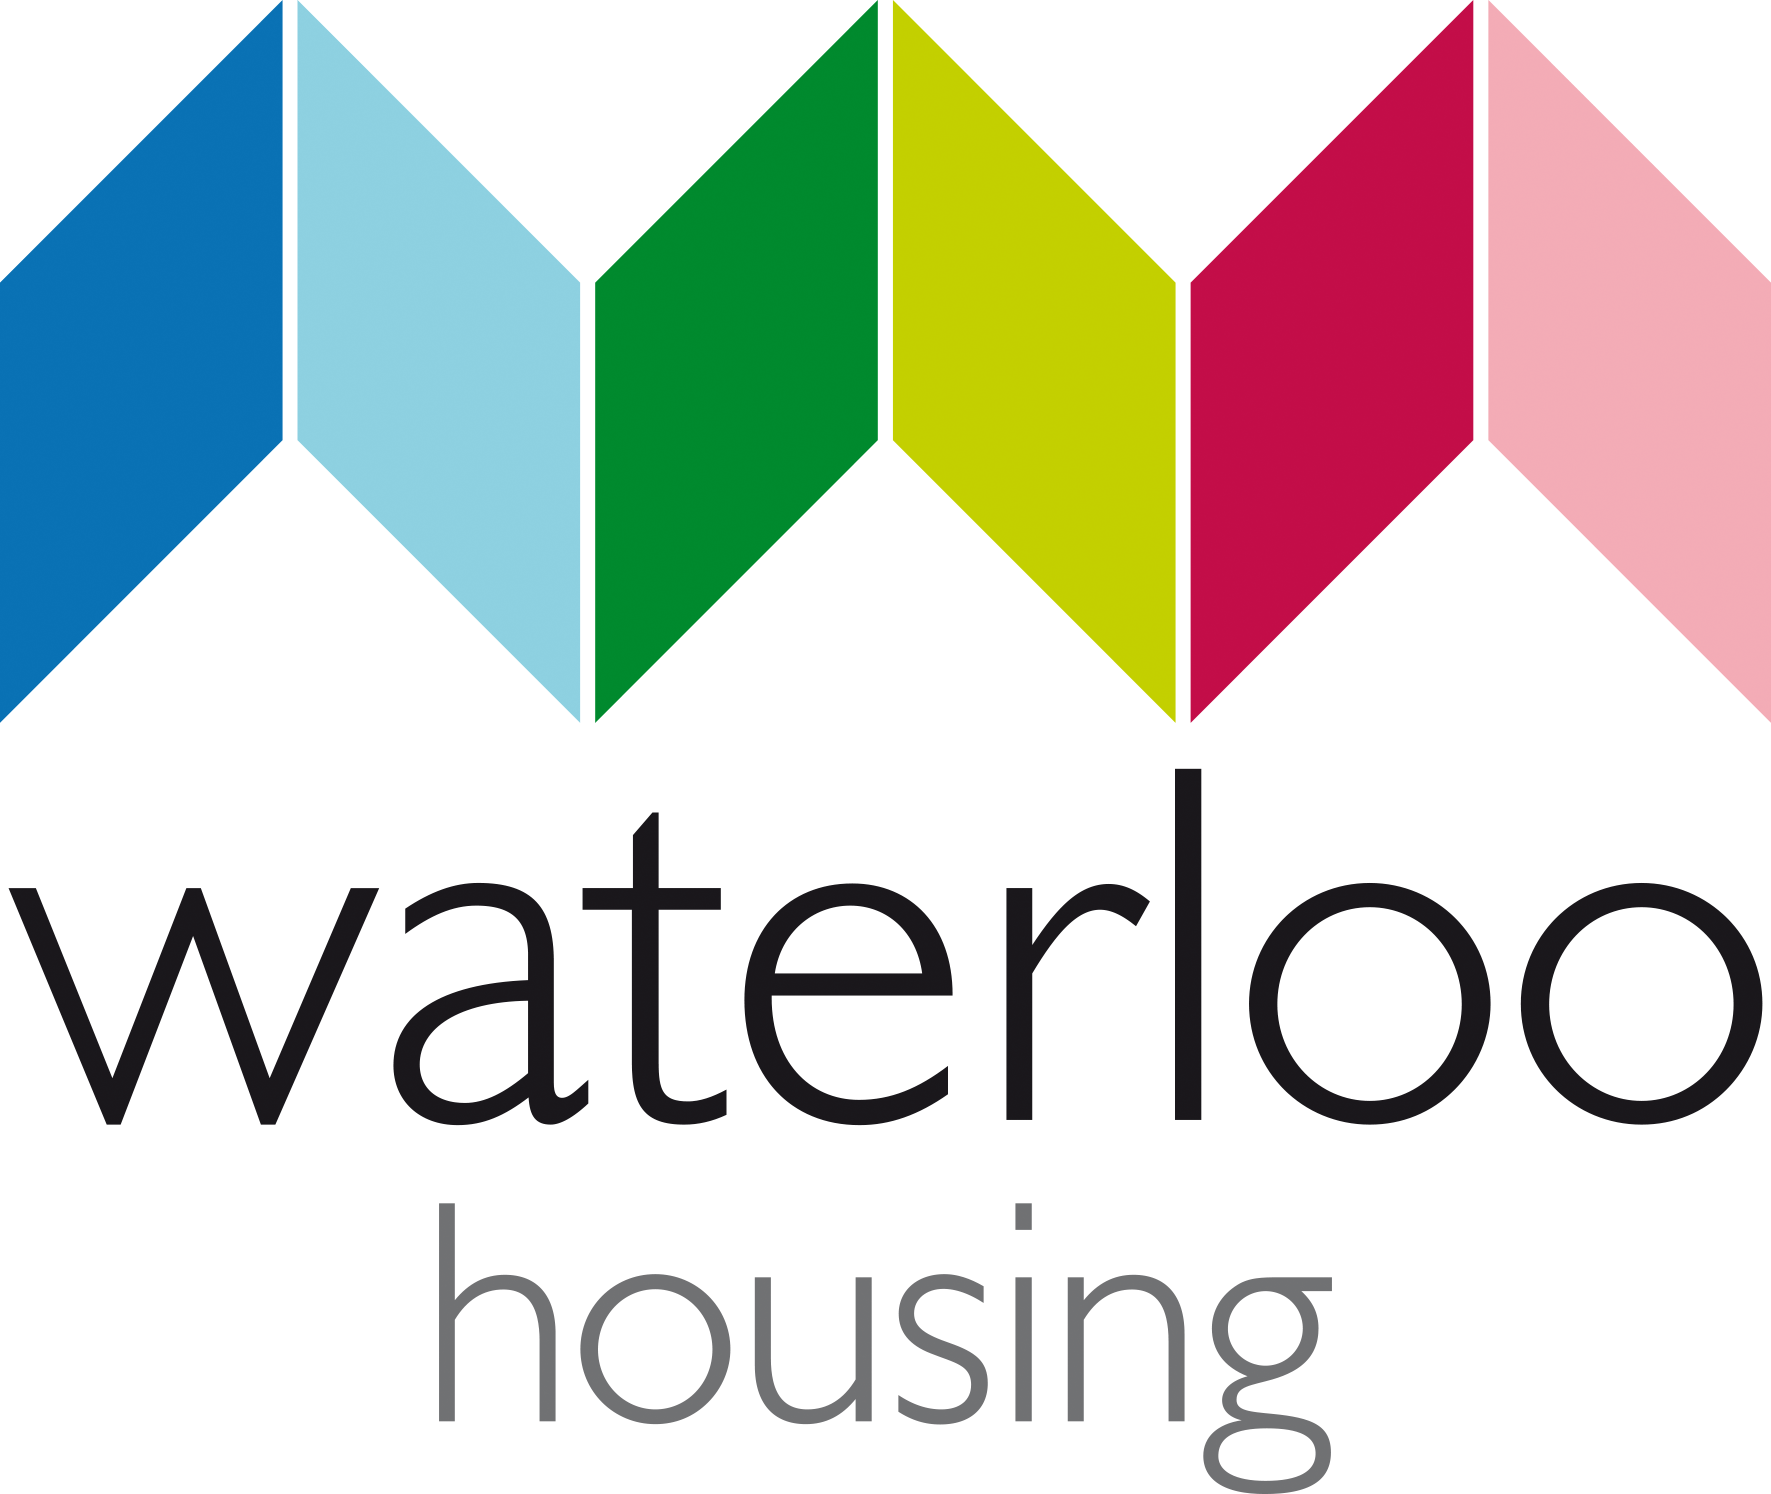 image-Waterloo-Housing-Logo.png